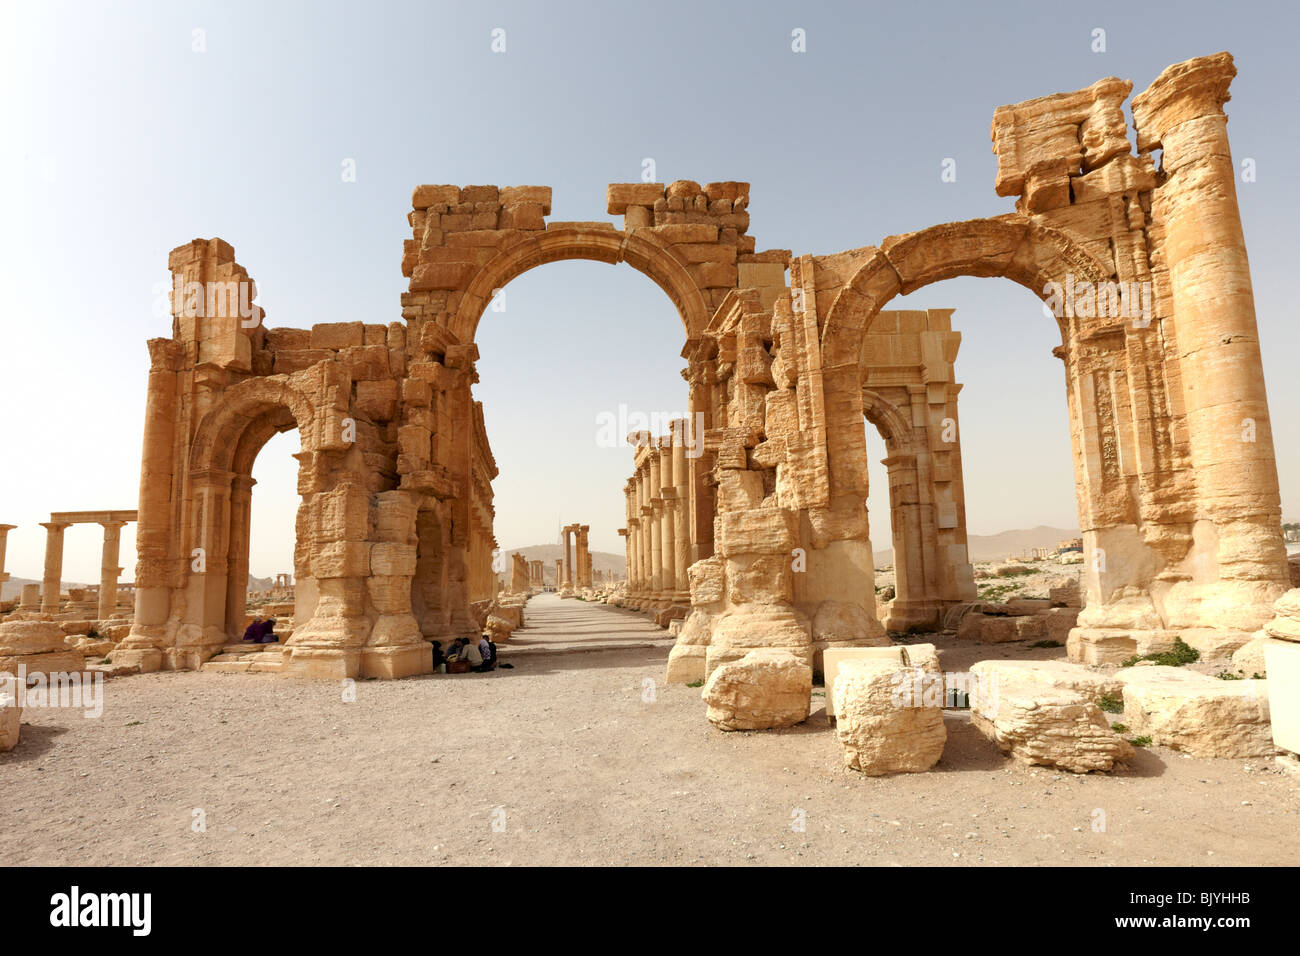 Syria Palmyra entrance to the great colonnade - Stock Image